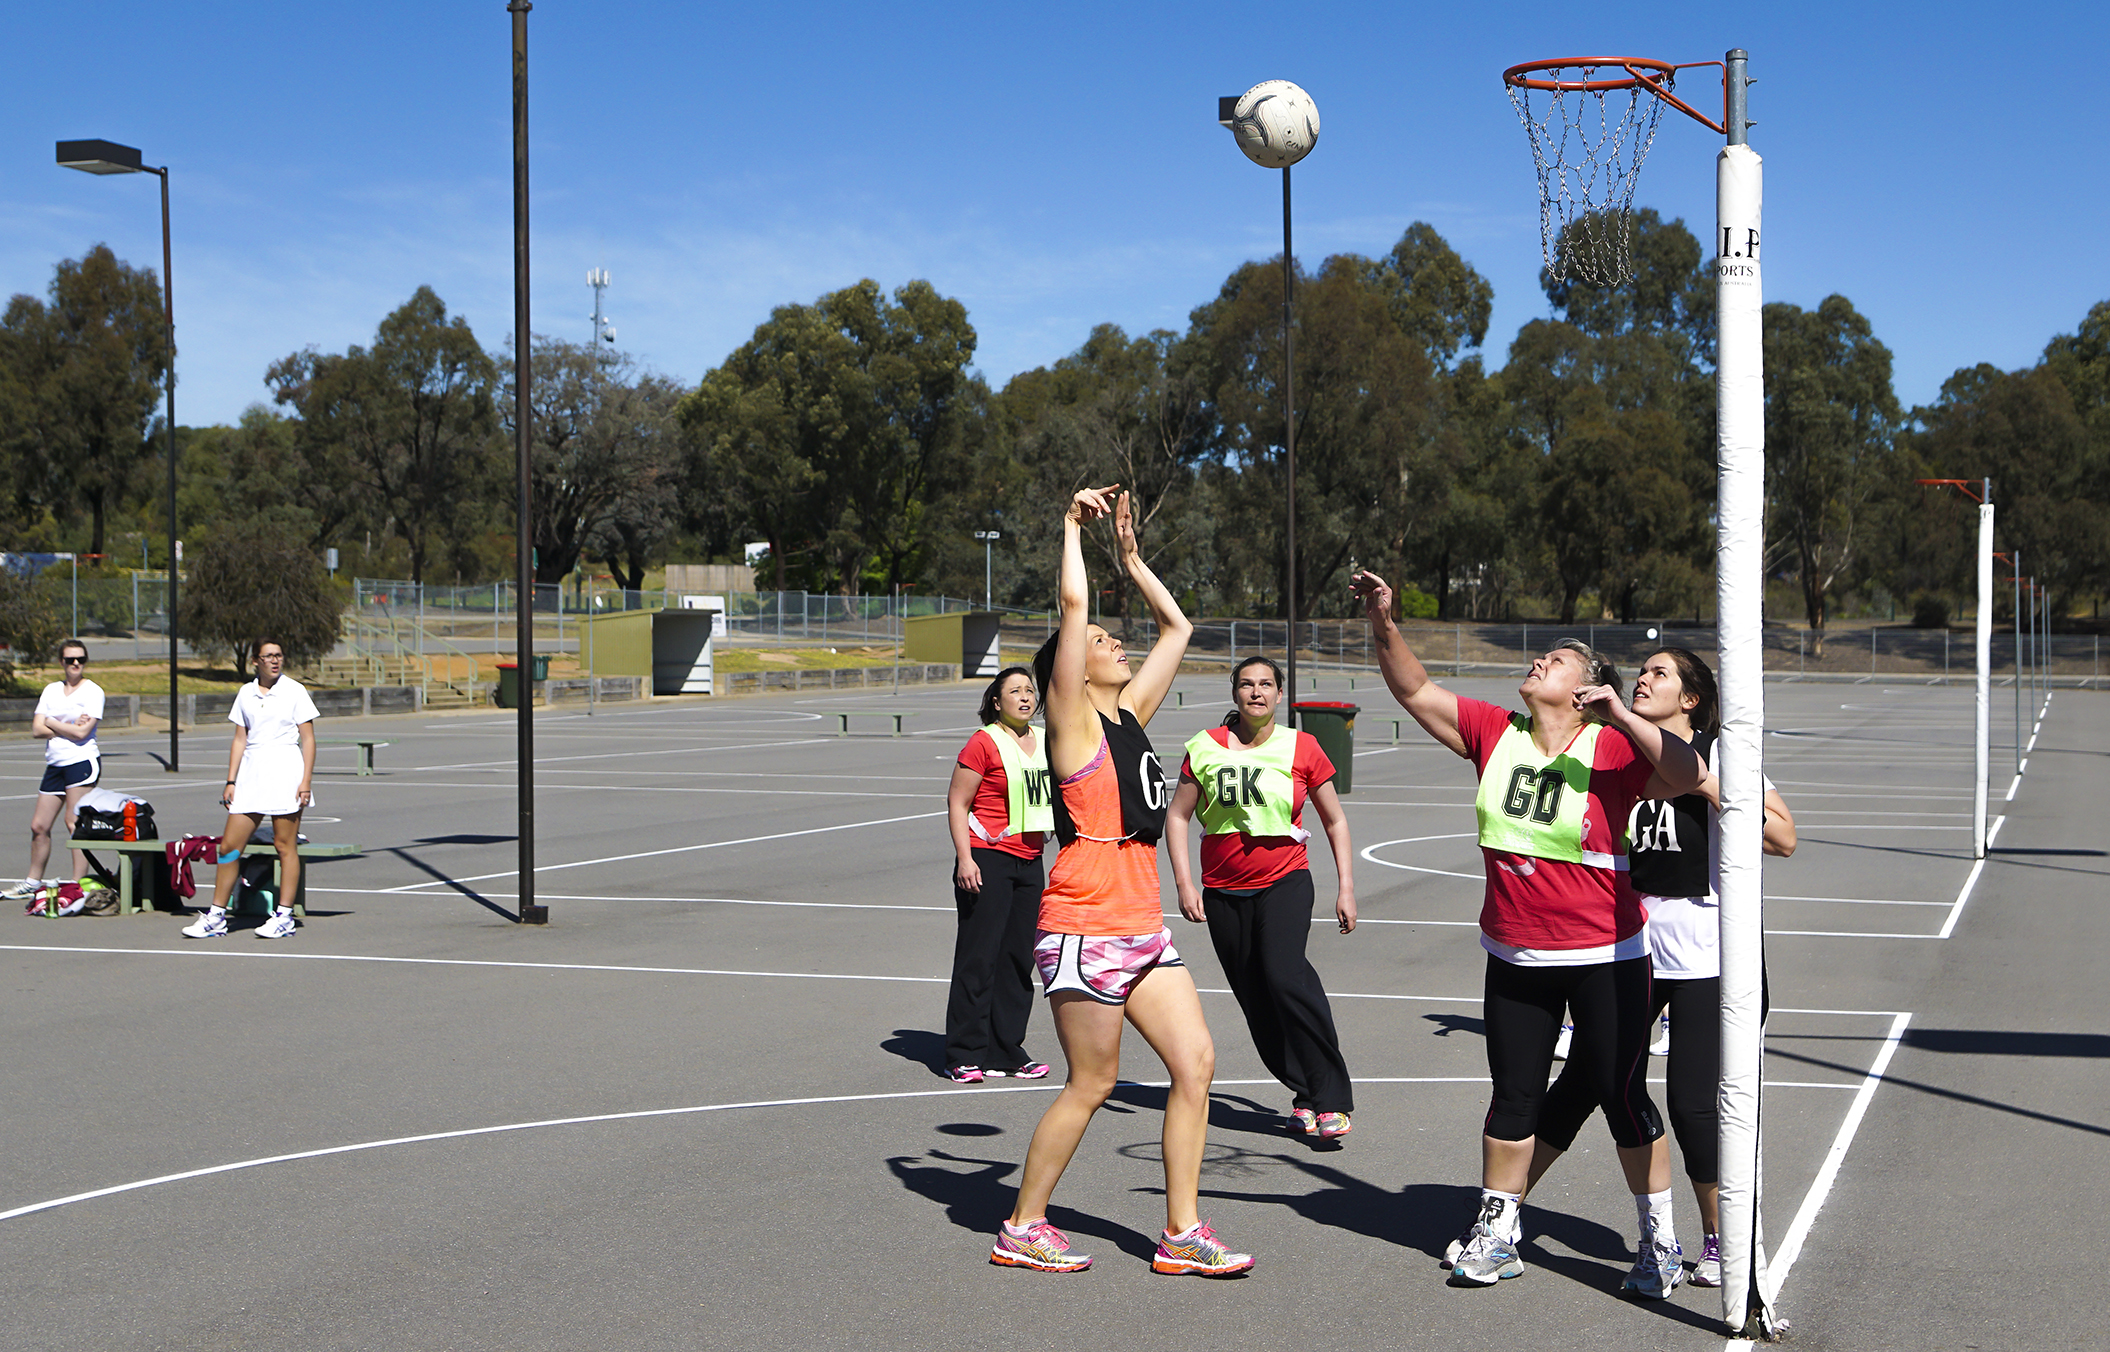 How to do Sports Photography Netball One